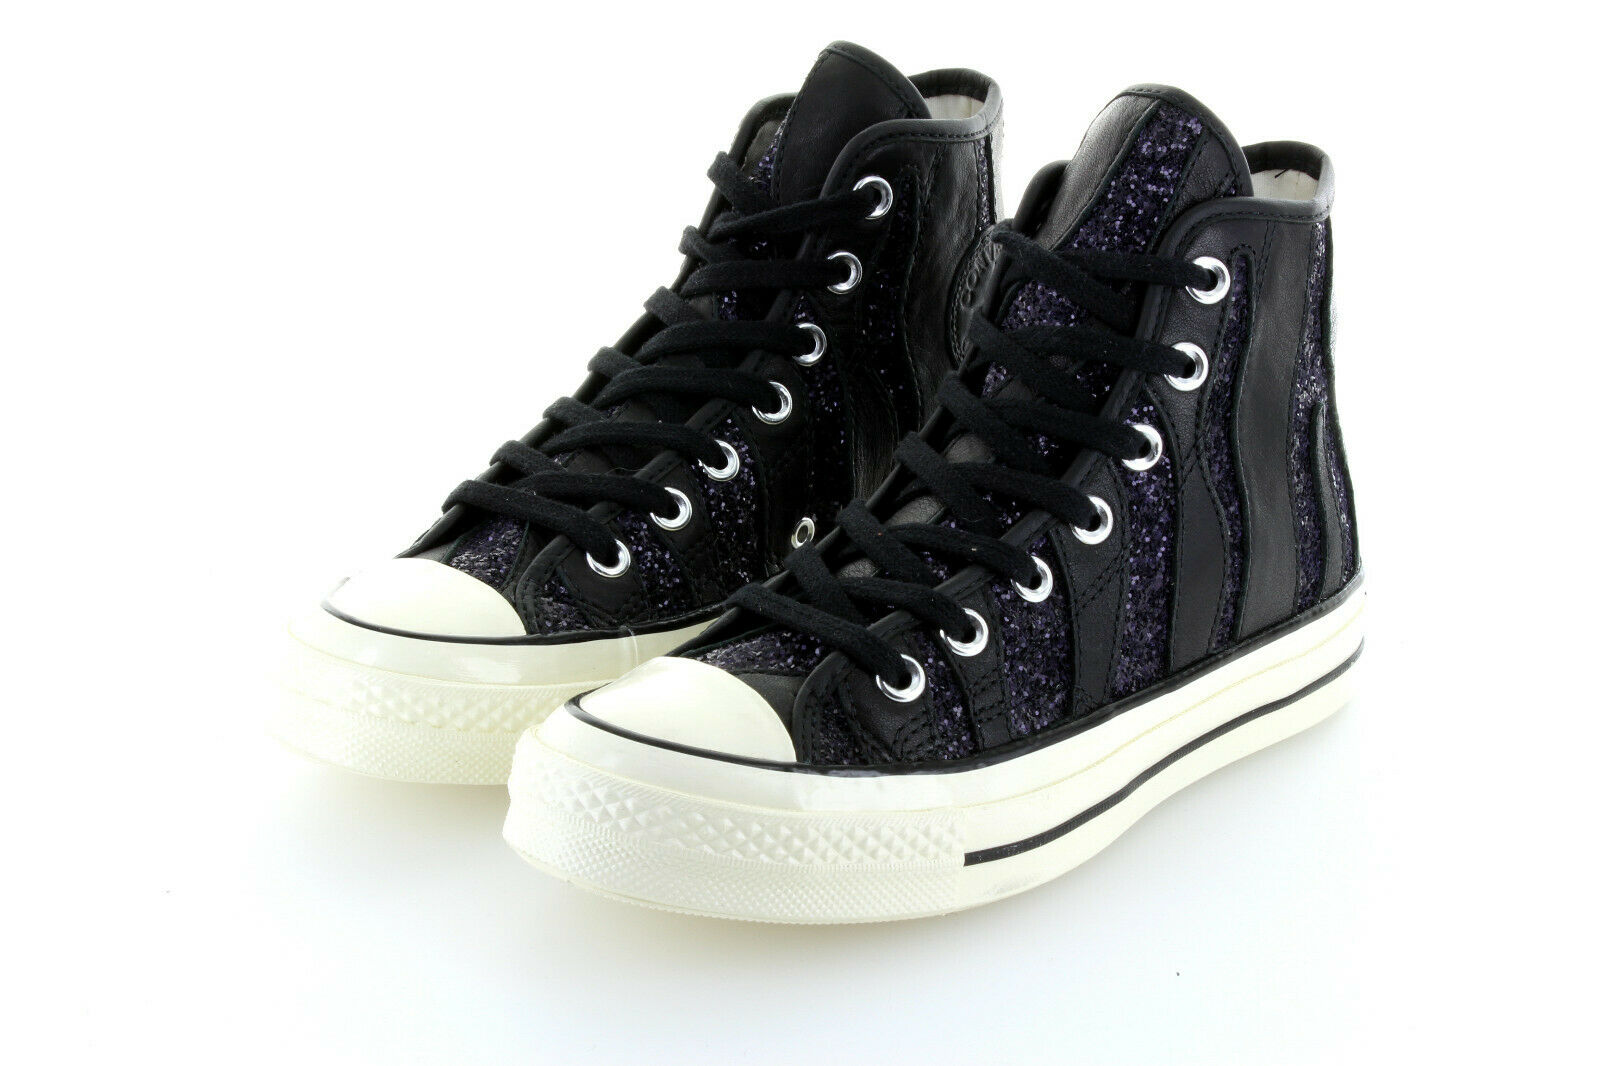 Converse Chuck Taylor AS Limited 70s Hi Black Element Leather Gr. 37,5   38,5